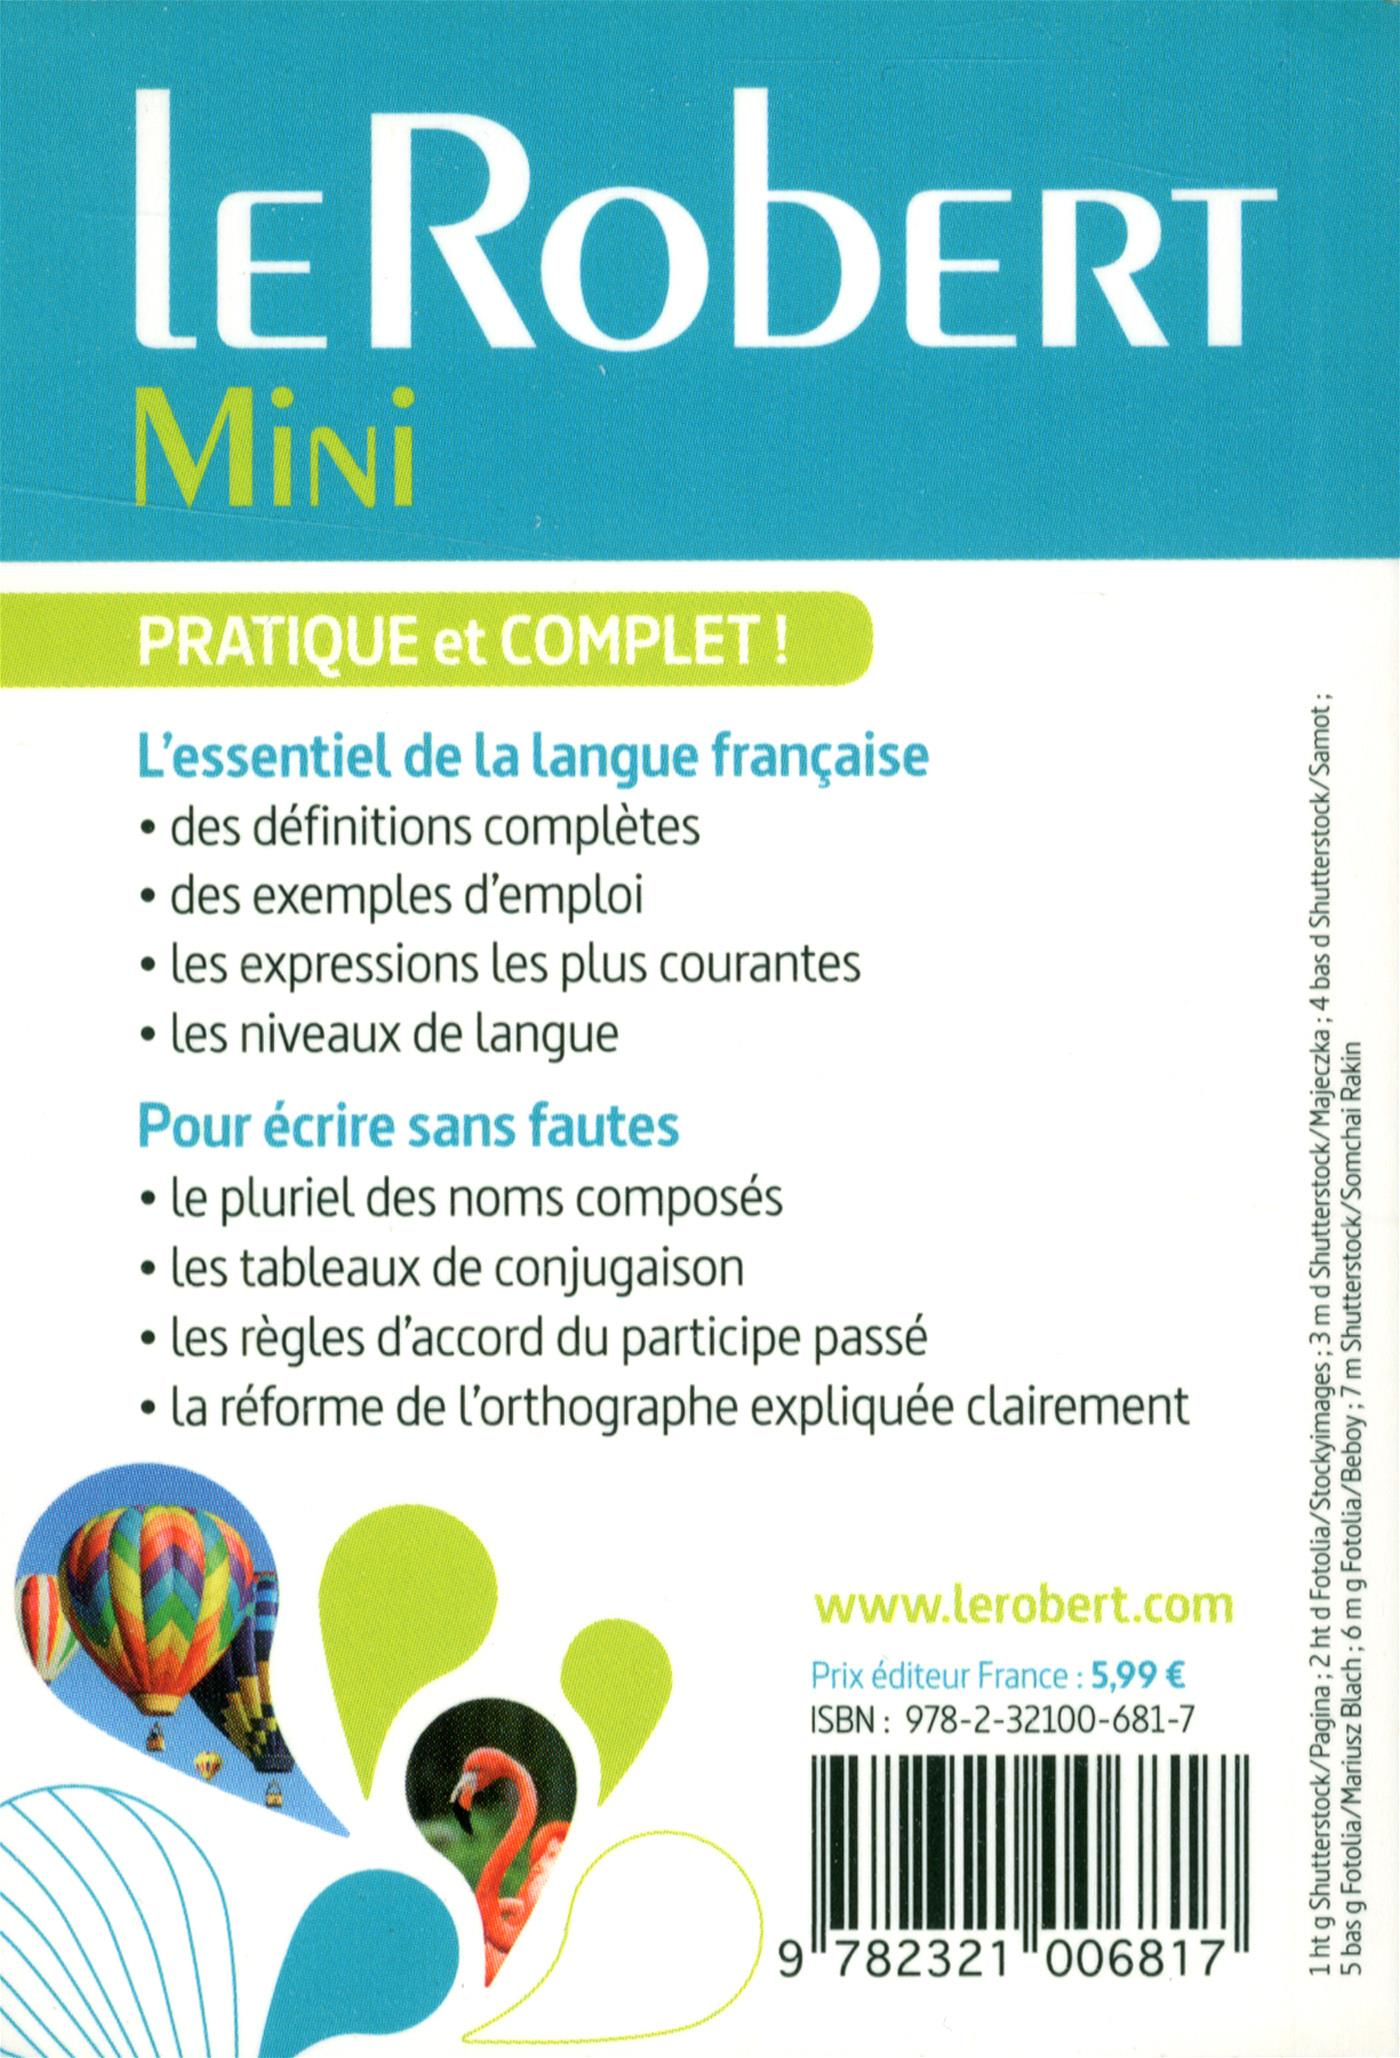 Livre le robert mini messageries adp - Office de la langue francaise dictionnaire ...